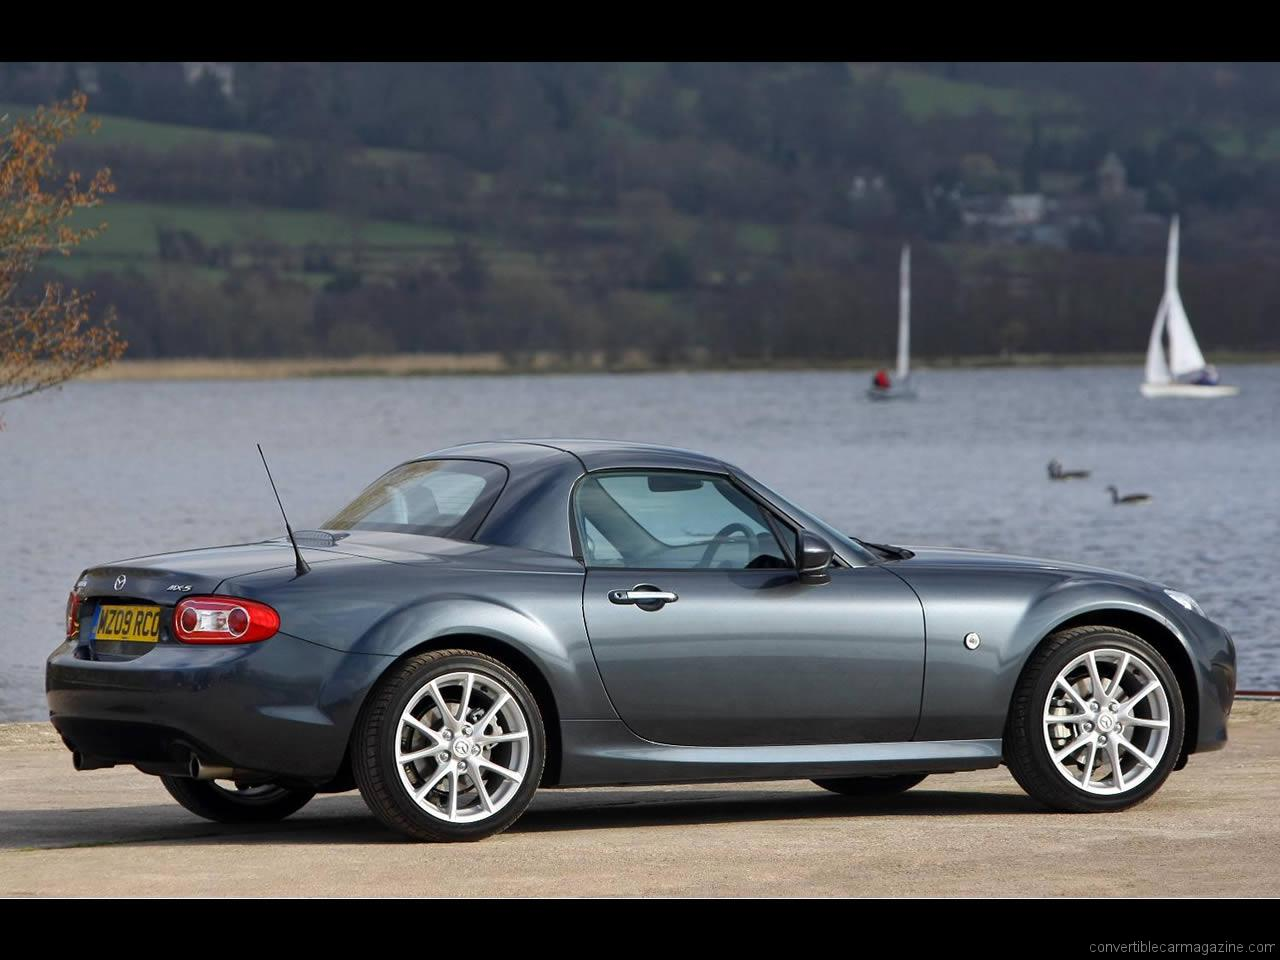 2015 Mazda Mx 5 Engine Diagram Trusted Wiring Diagrams 2009 Mx5 Miata Roadster Coup Buying Guide Com